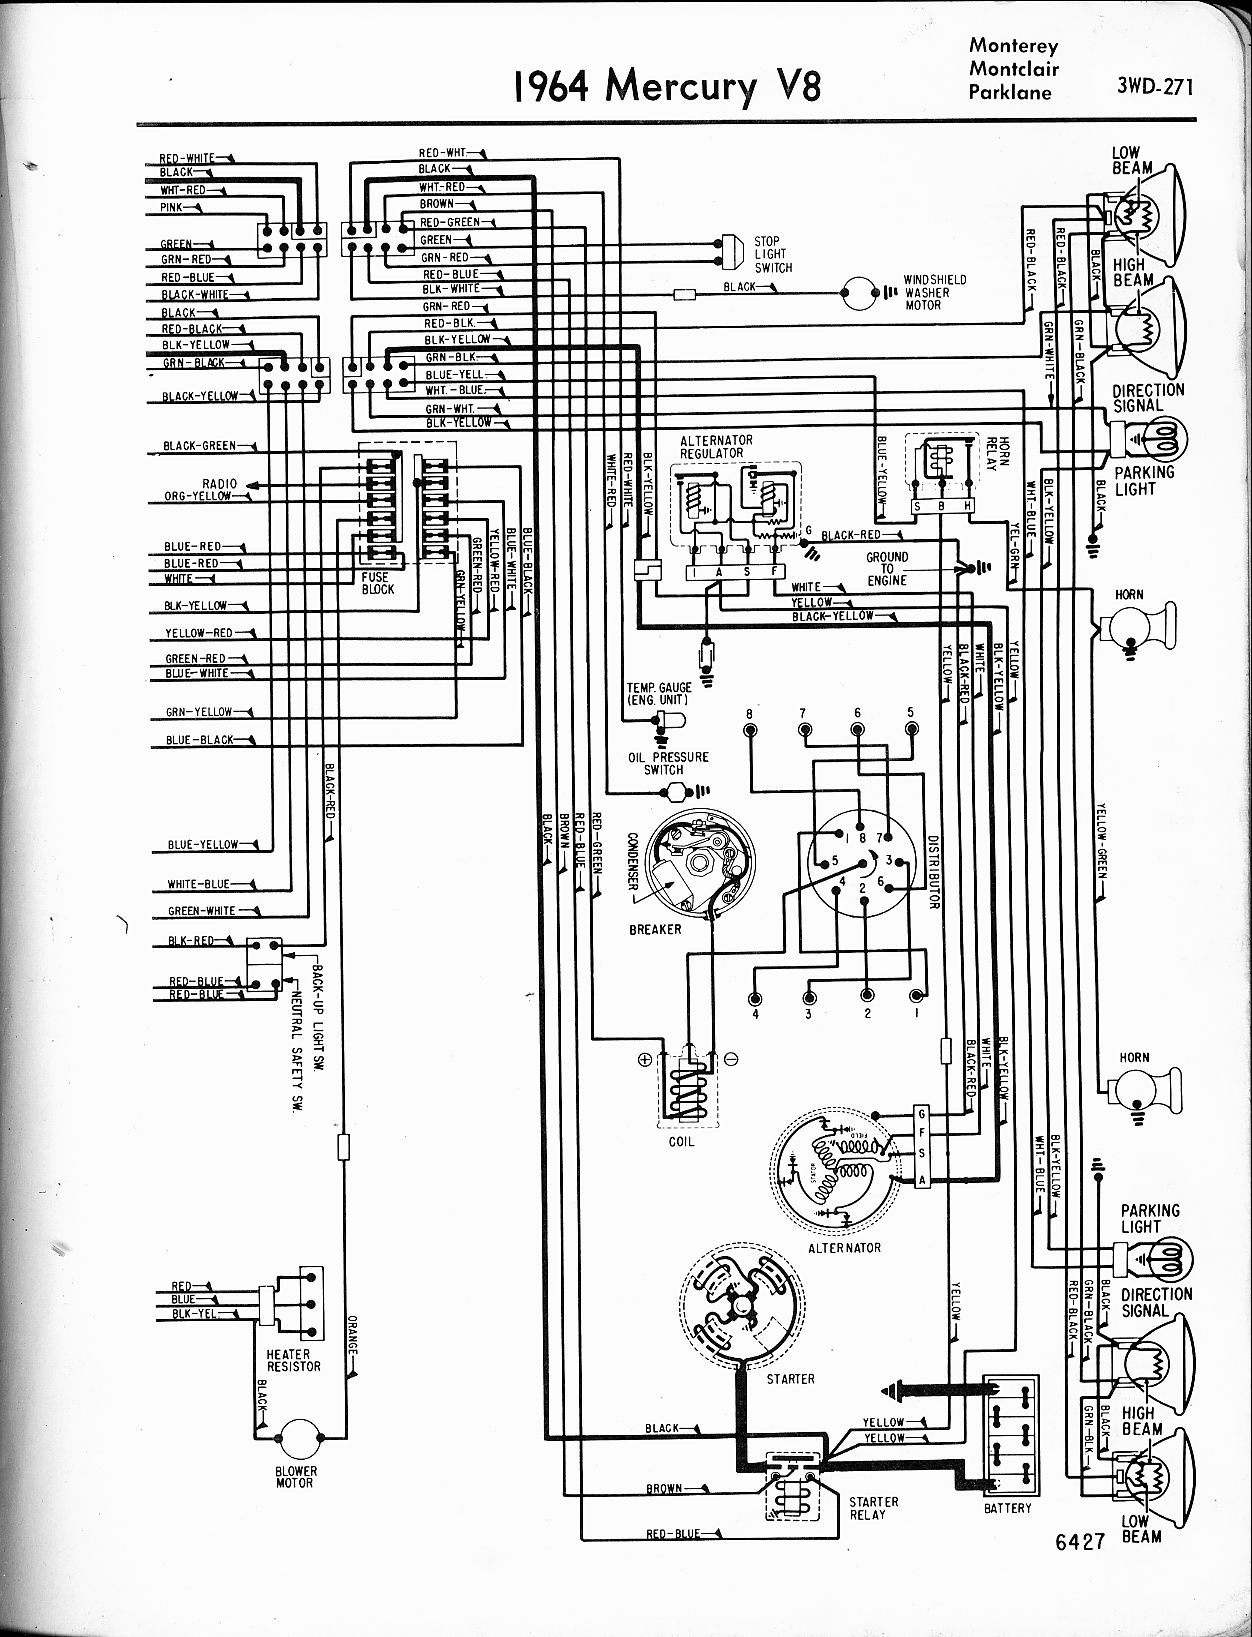 hight resolution of mercury wiring diagram wiring diagram centremercury wiring diagrams the old car manual project1964 v8 monterey